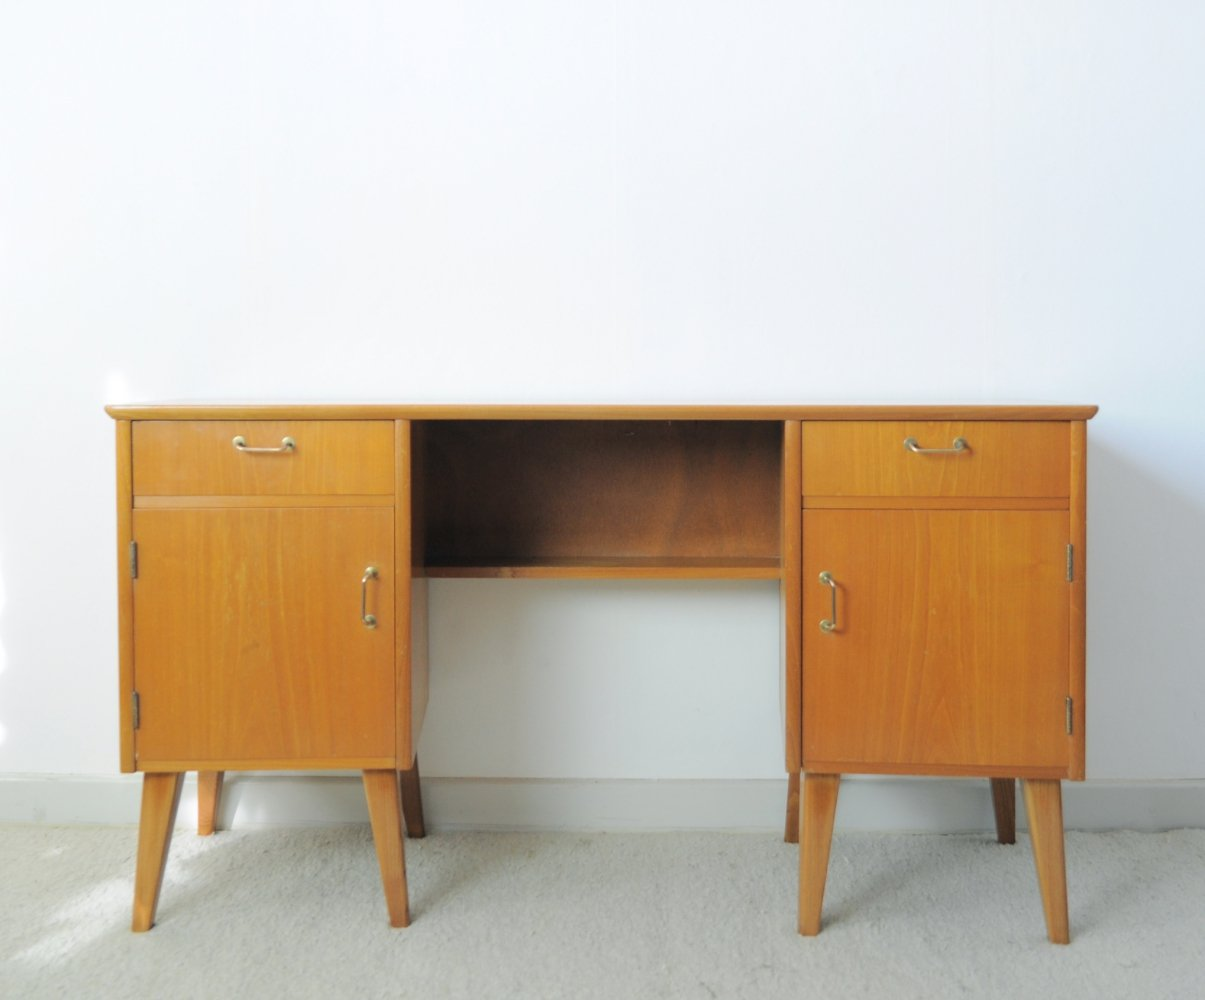 Childs Executive Desk in Ash with Bowed Top, 1950s